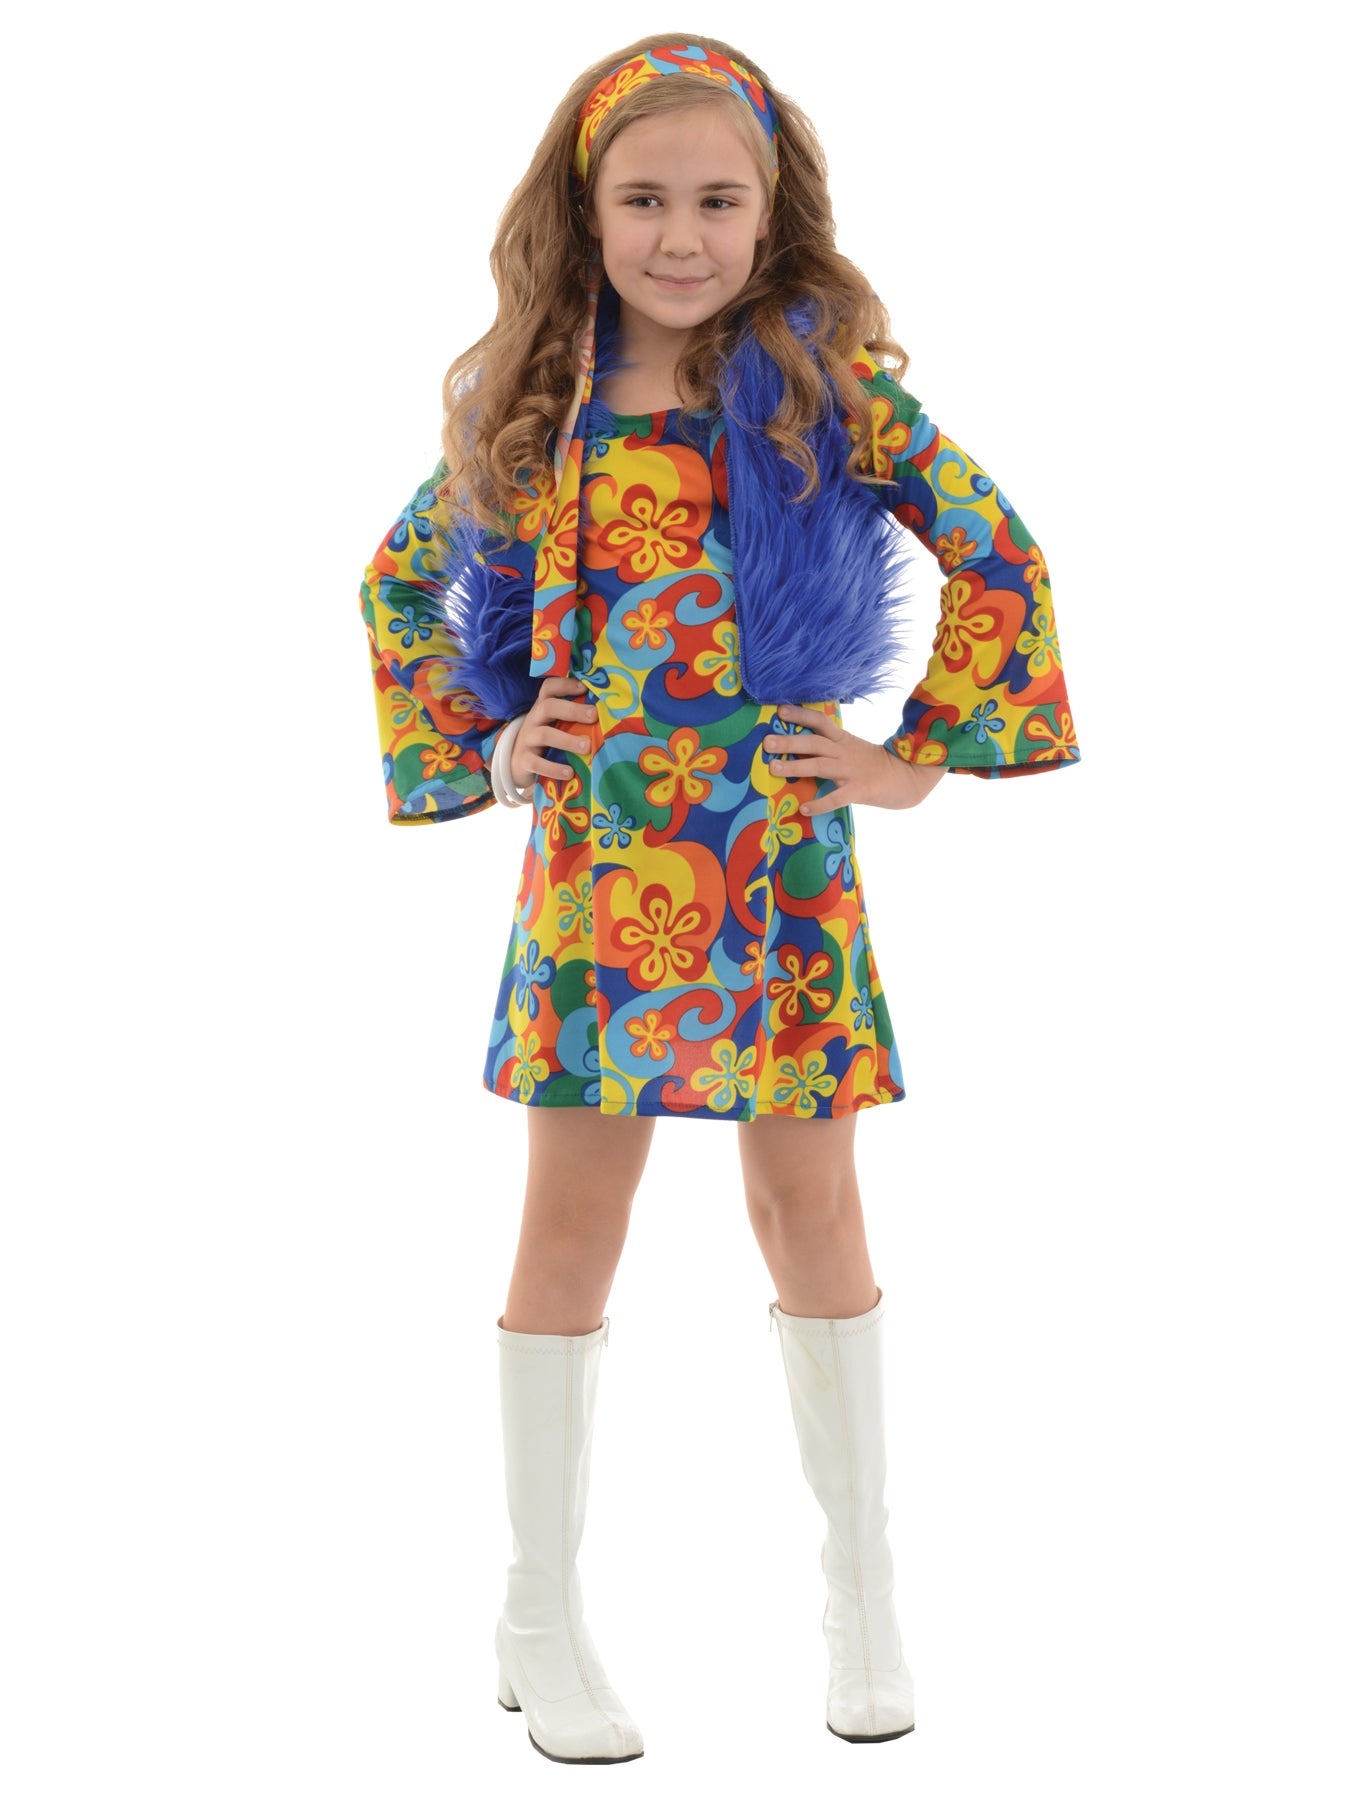 Hobbypos Far Out Hippie Hippy 1970s Flower Power Peace Retro Book Week Girls Costume